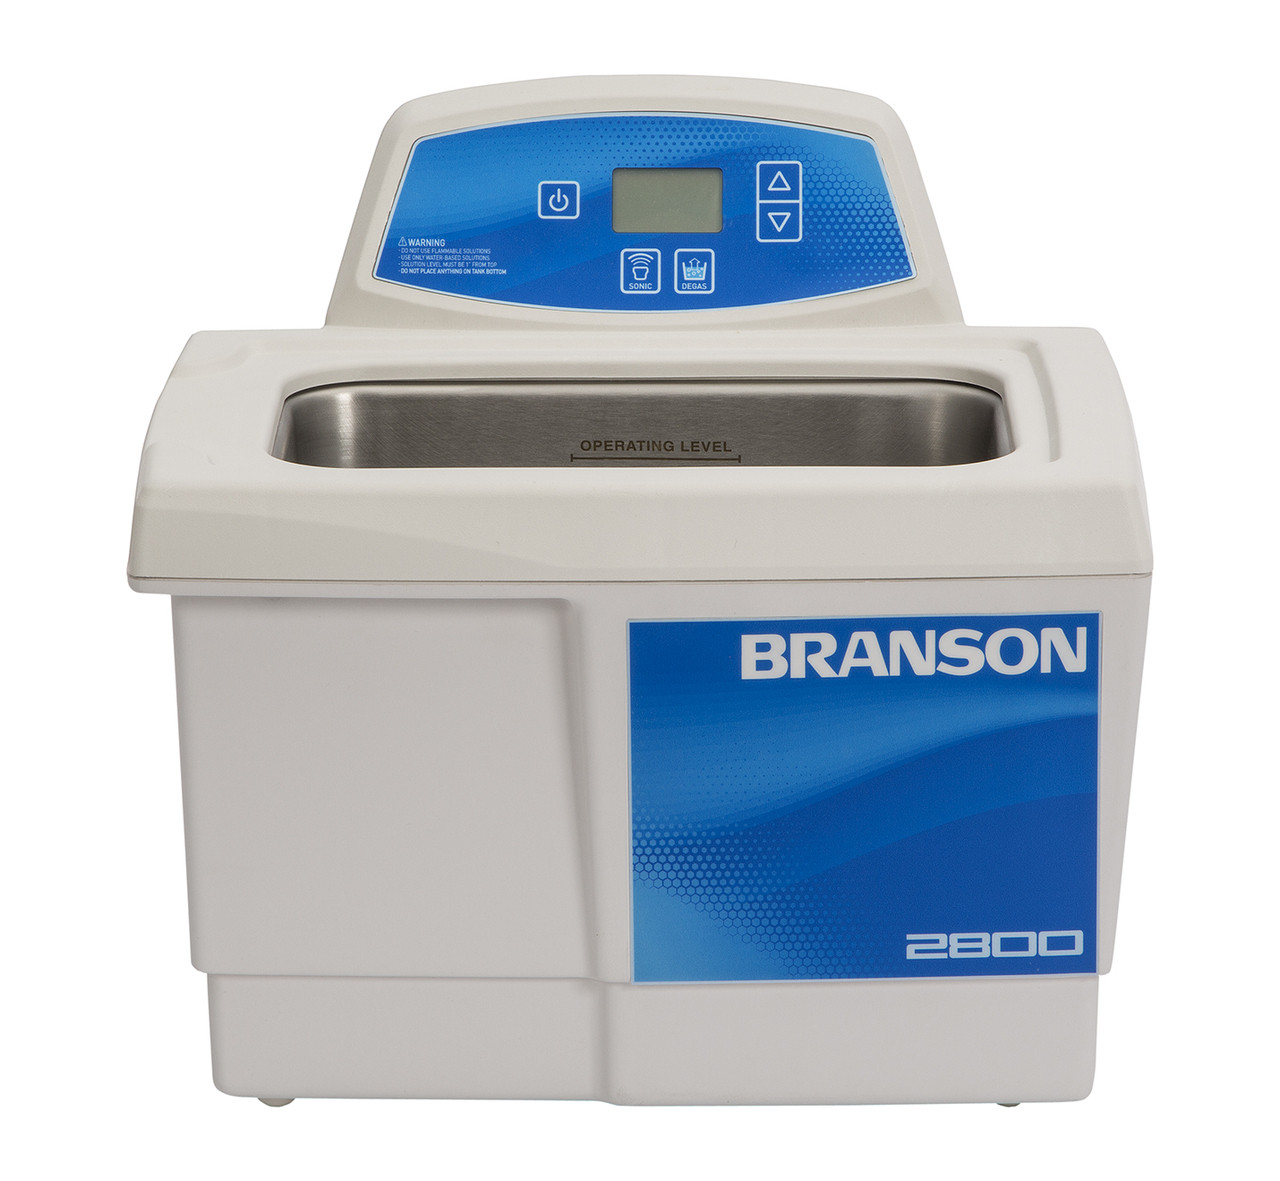 Branson CPX2800 Ultrasonic Cleaner